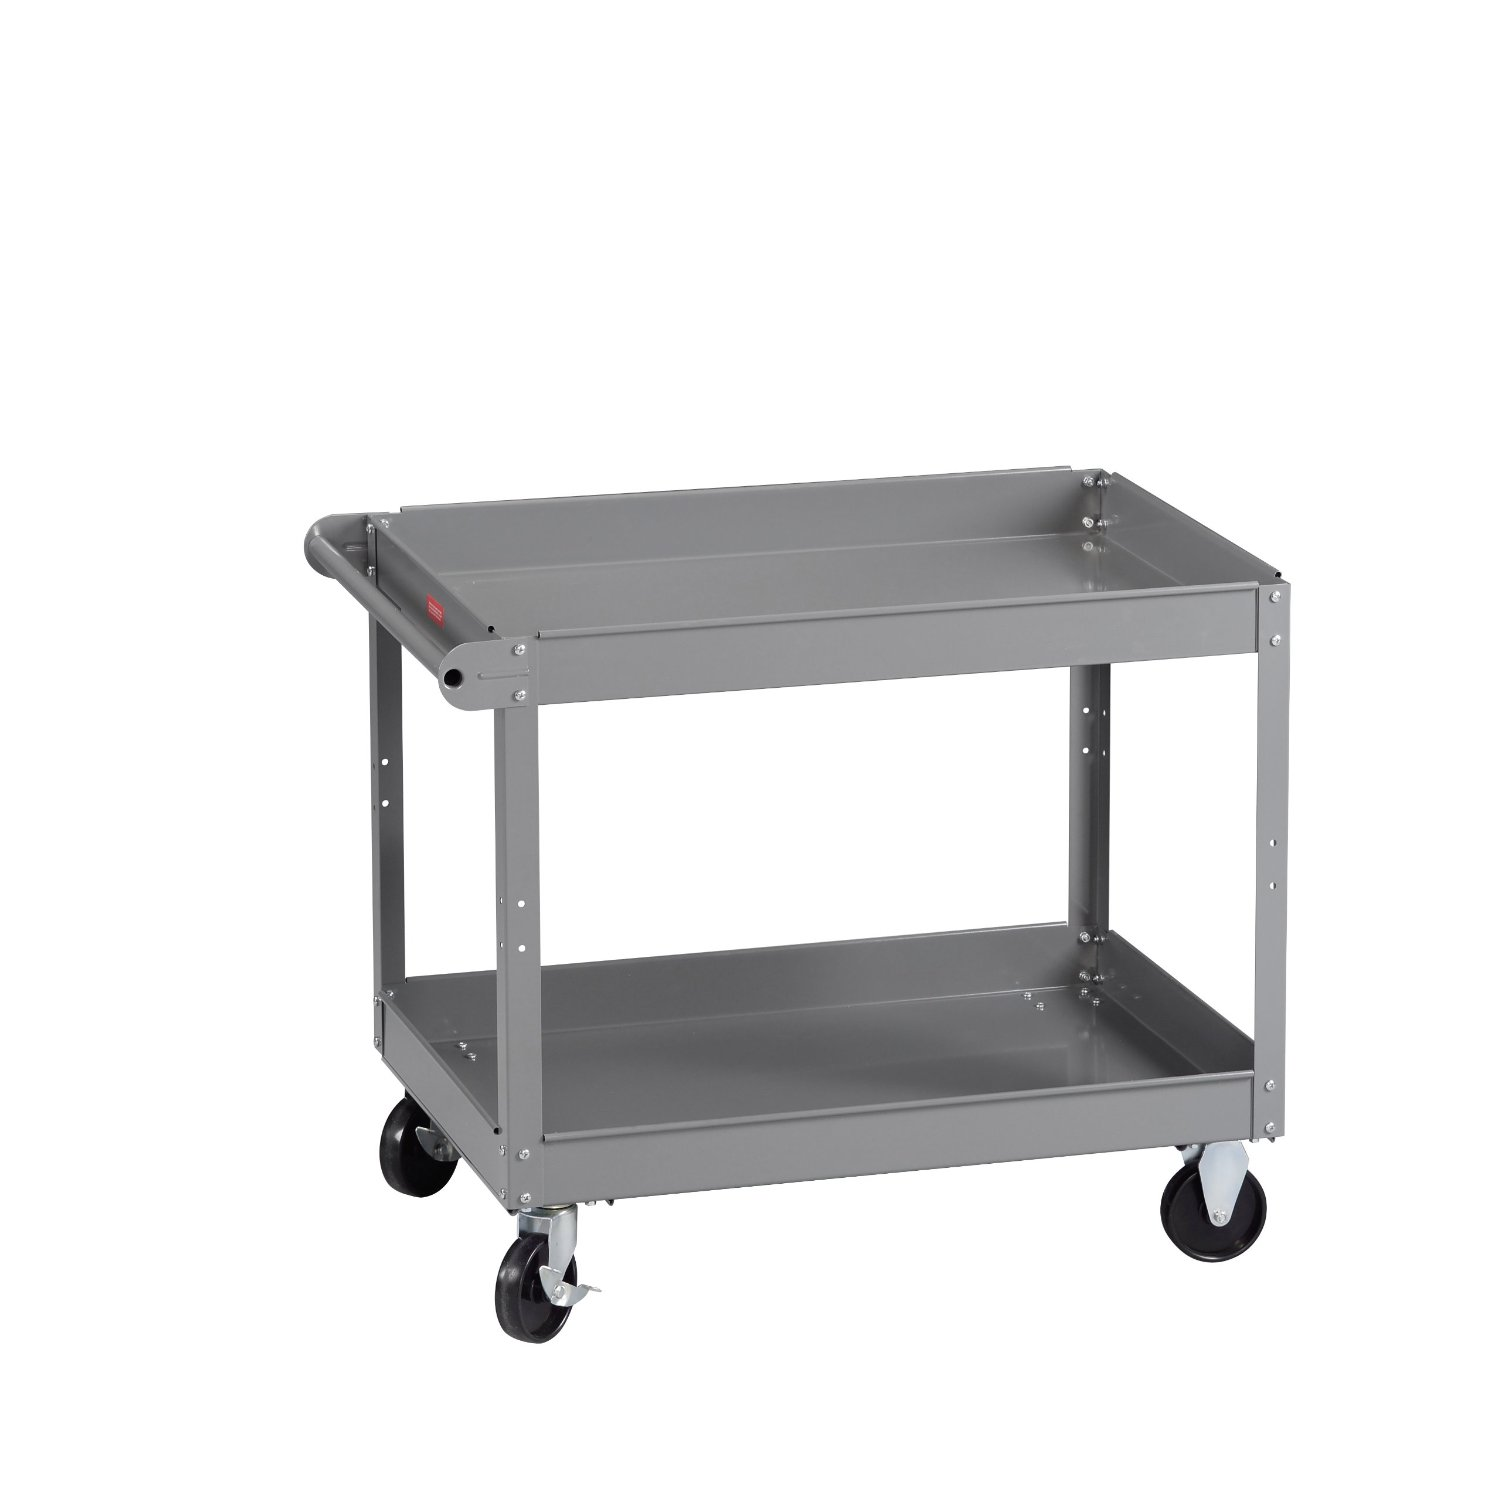 Chic Small Edsal Shelving In Gray Made Of Steel With Wheels For Garage Furniture Ideas